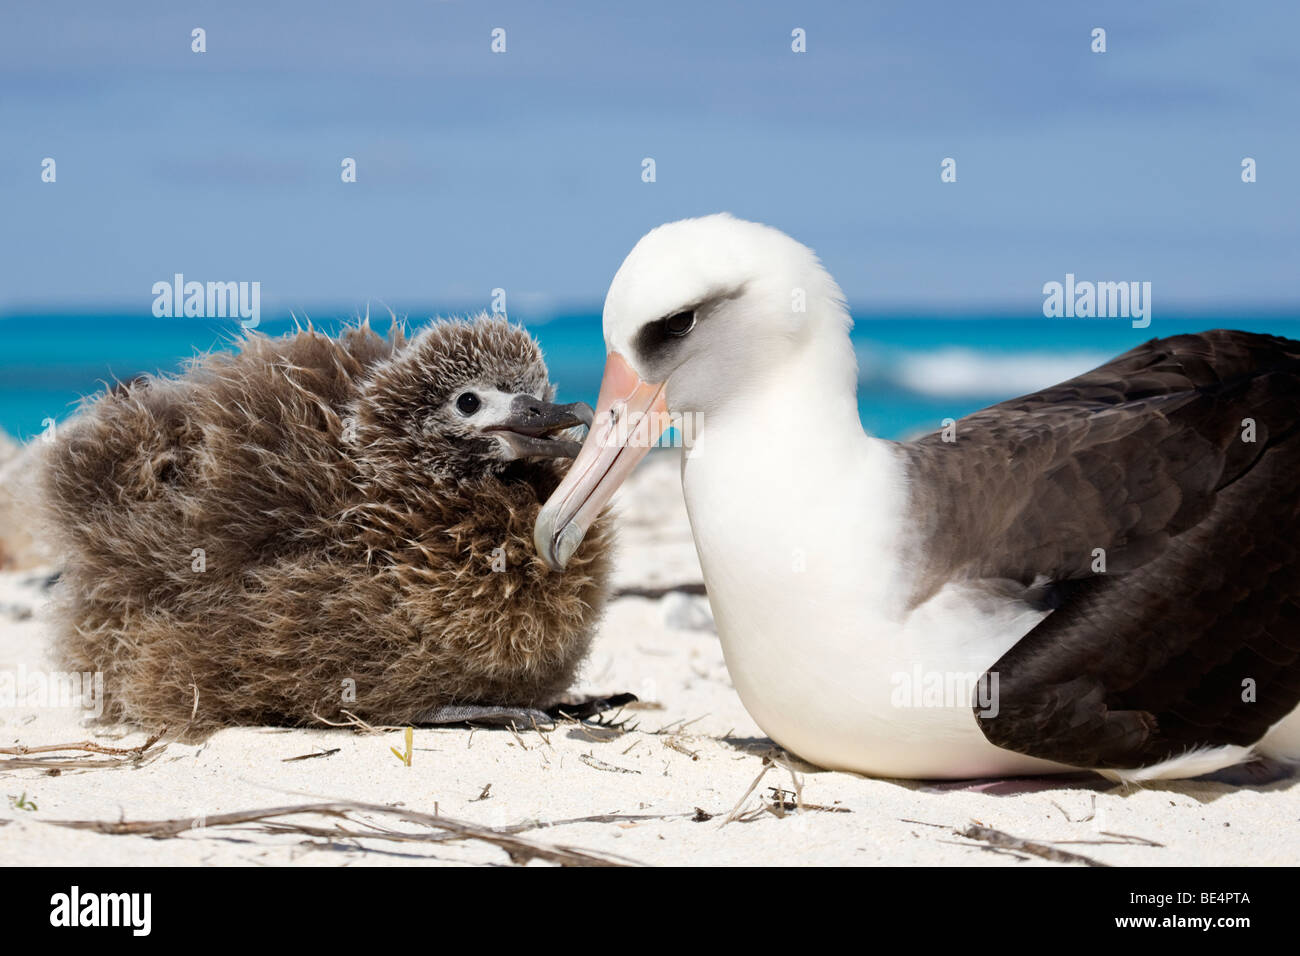 Laysan Albatross chick begging to be fed by parent, Midway Atoll - Stock Image